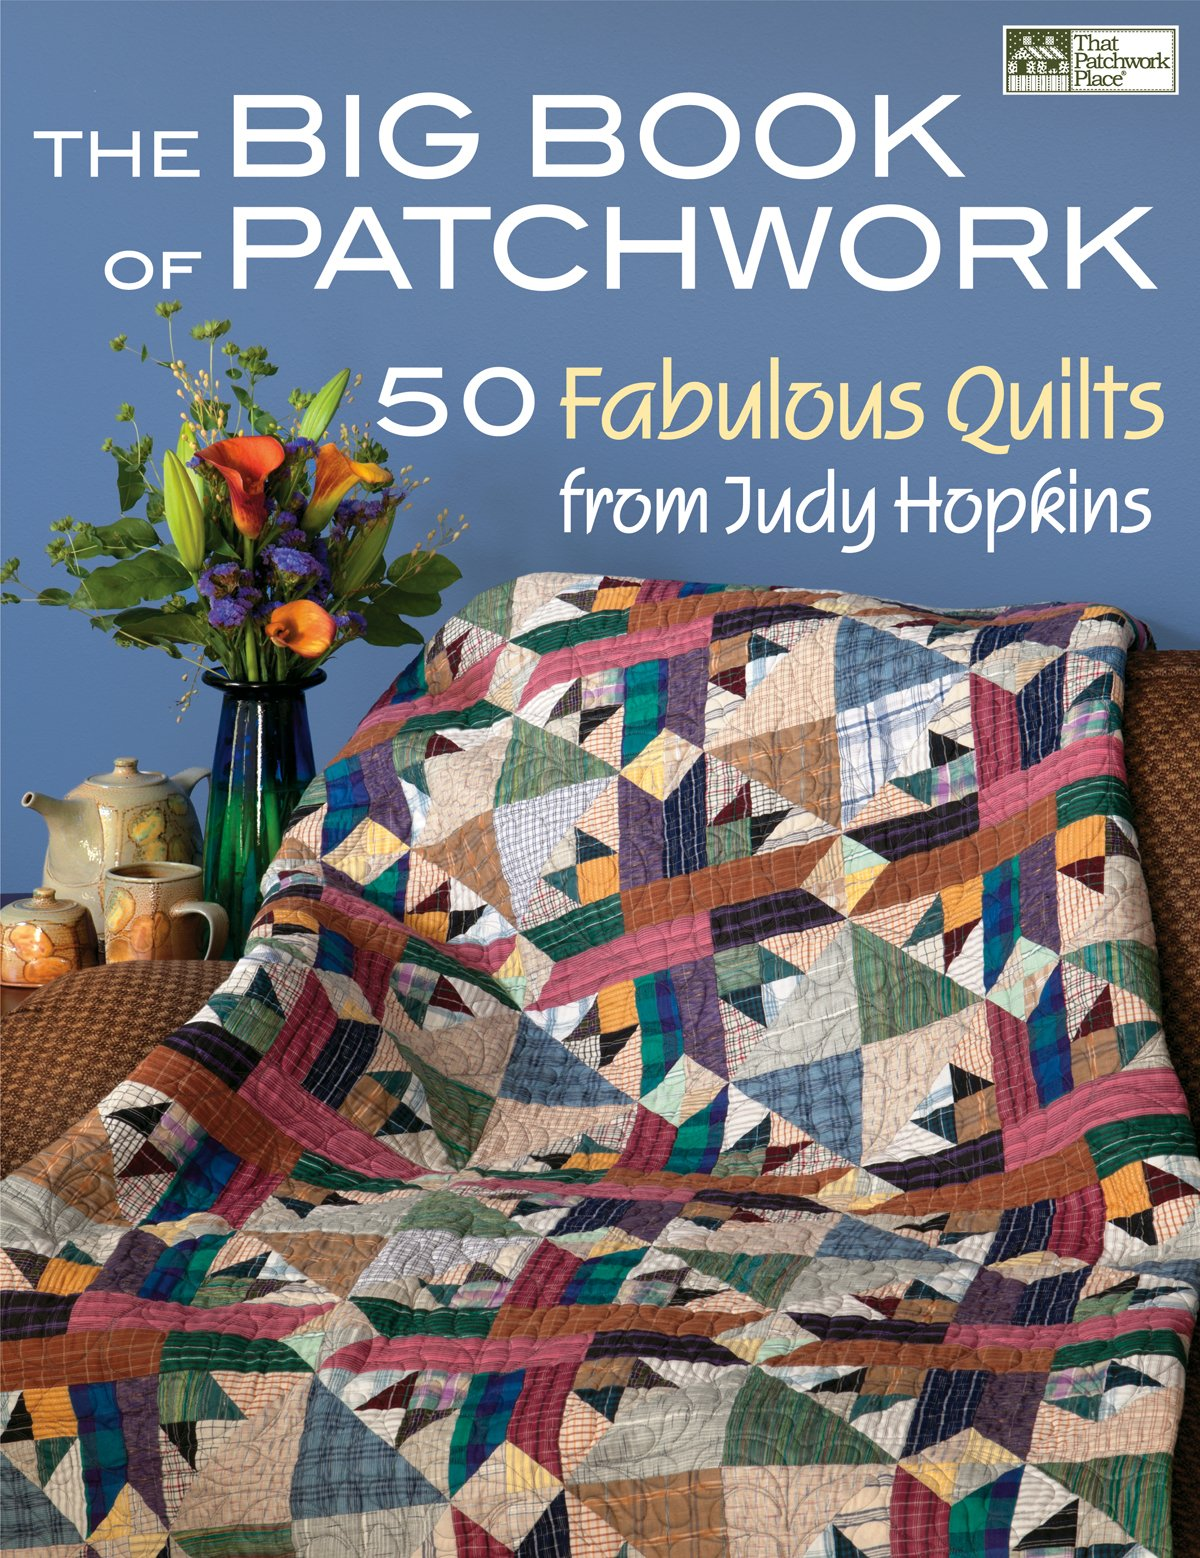 The Big Book of Patchwork (That Patchwork Place)